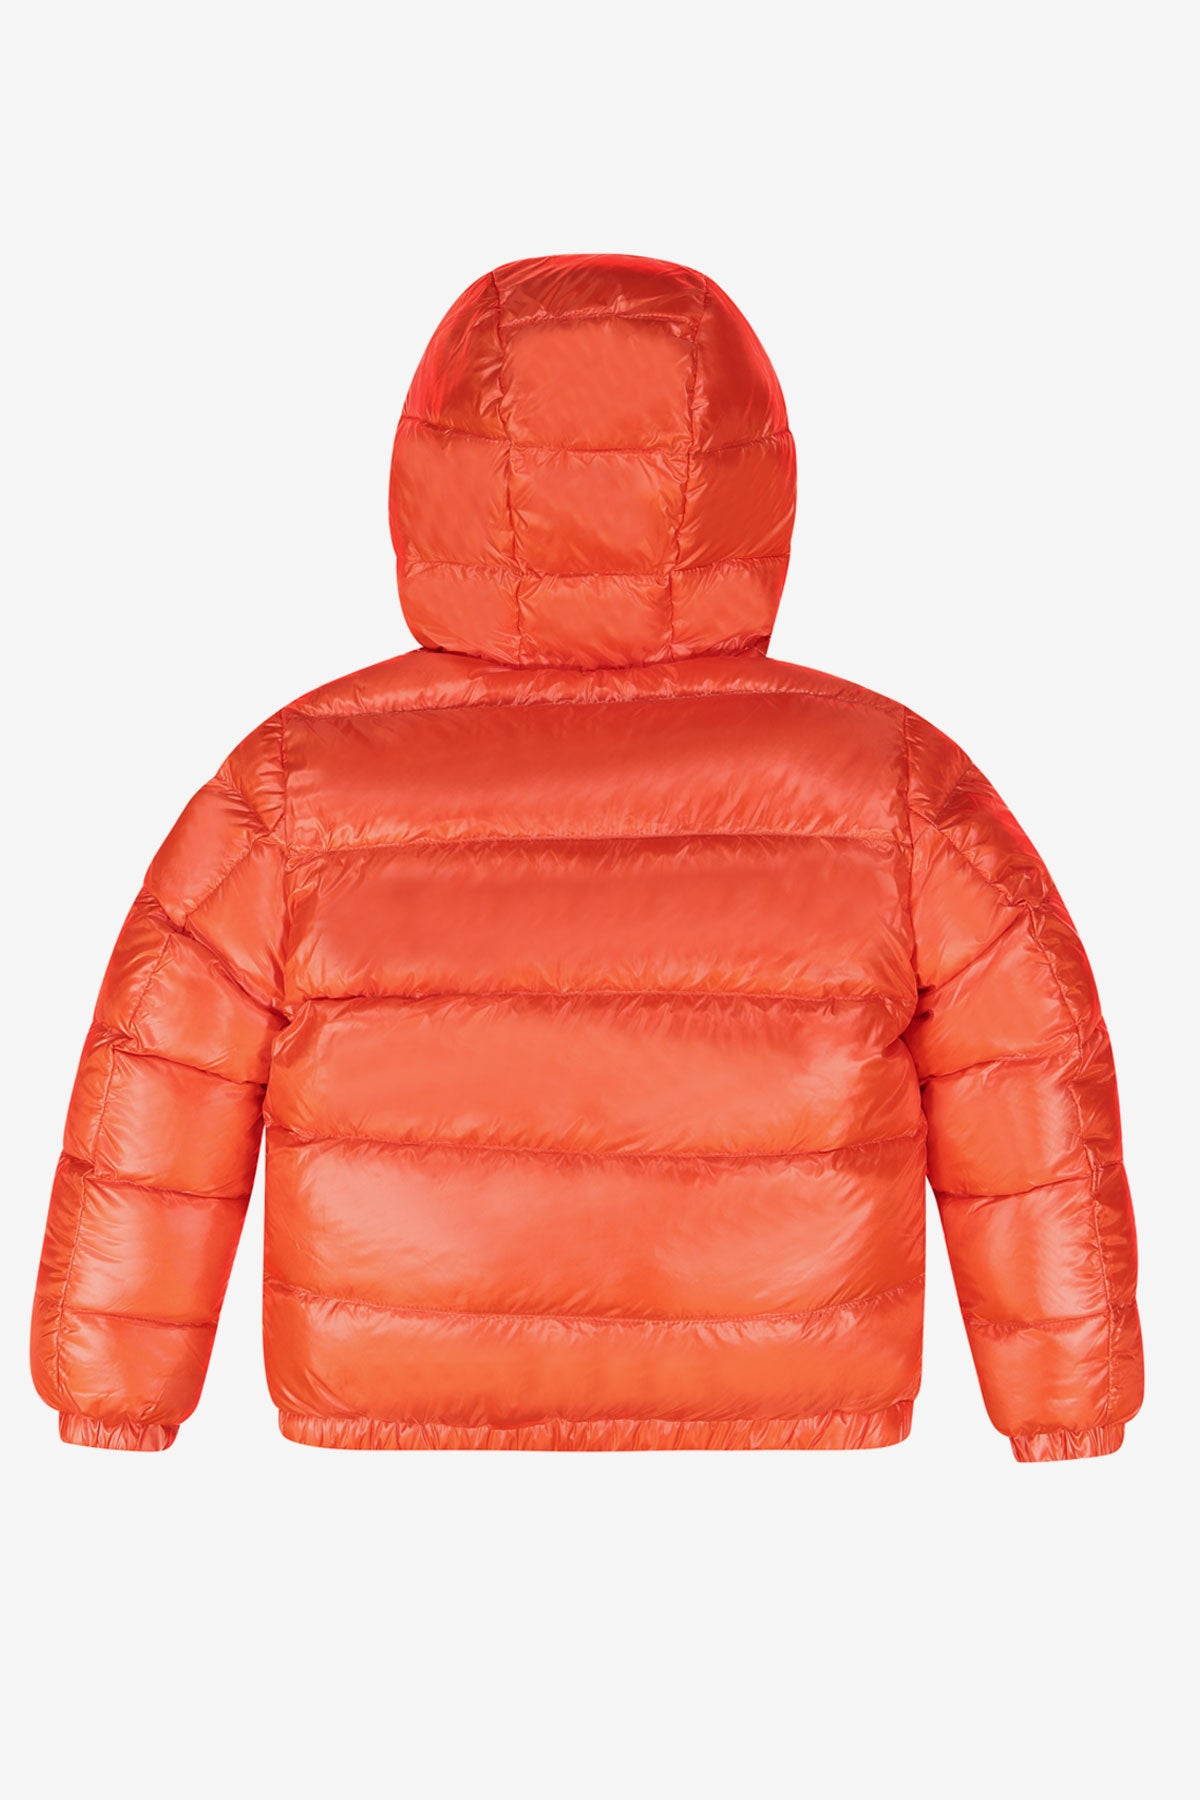 ADD Down Reversible Down Kids Jacket - Orange